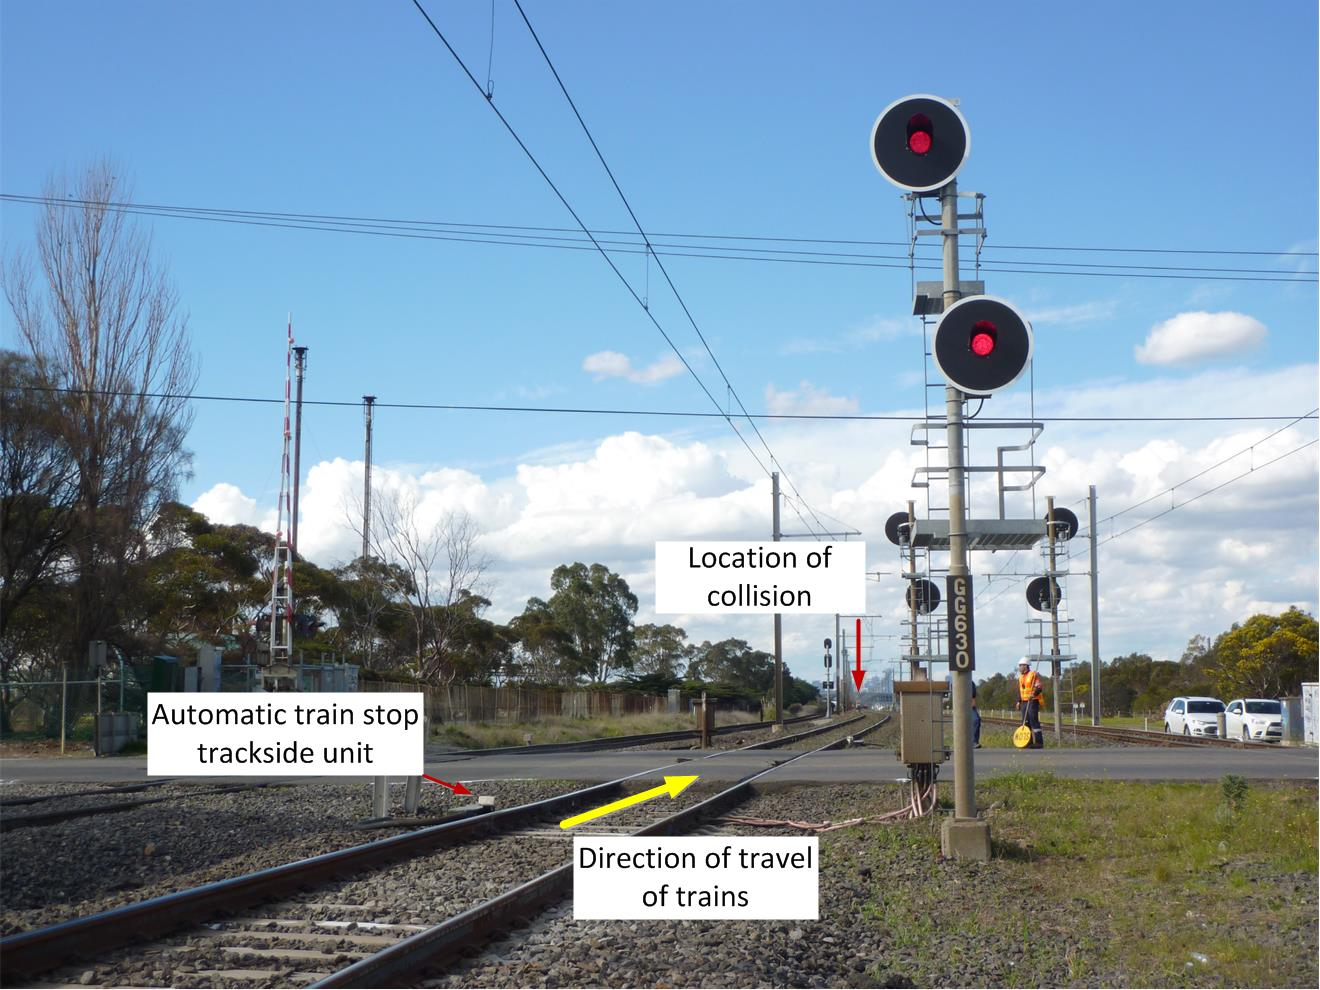 Figure 3: Signal GG630 and indication of collision site